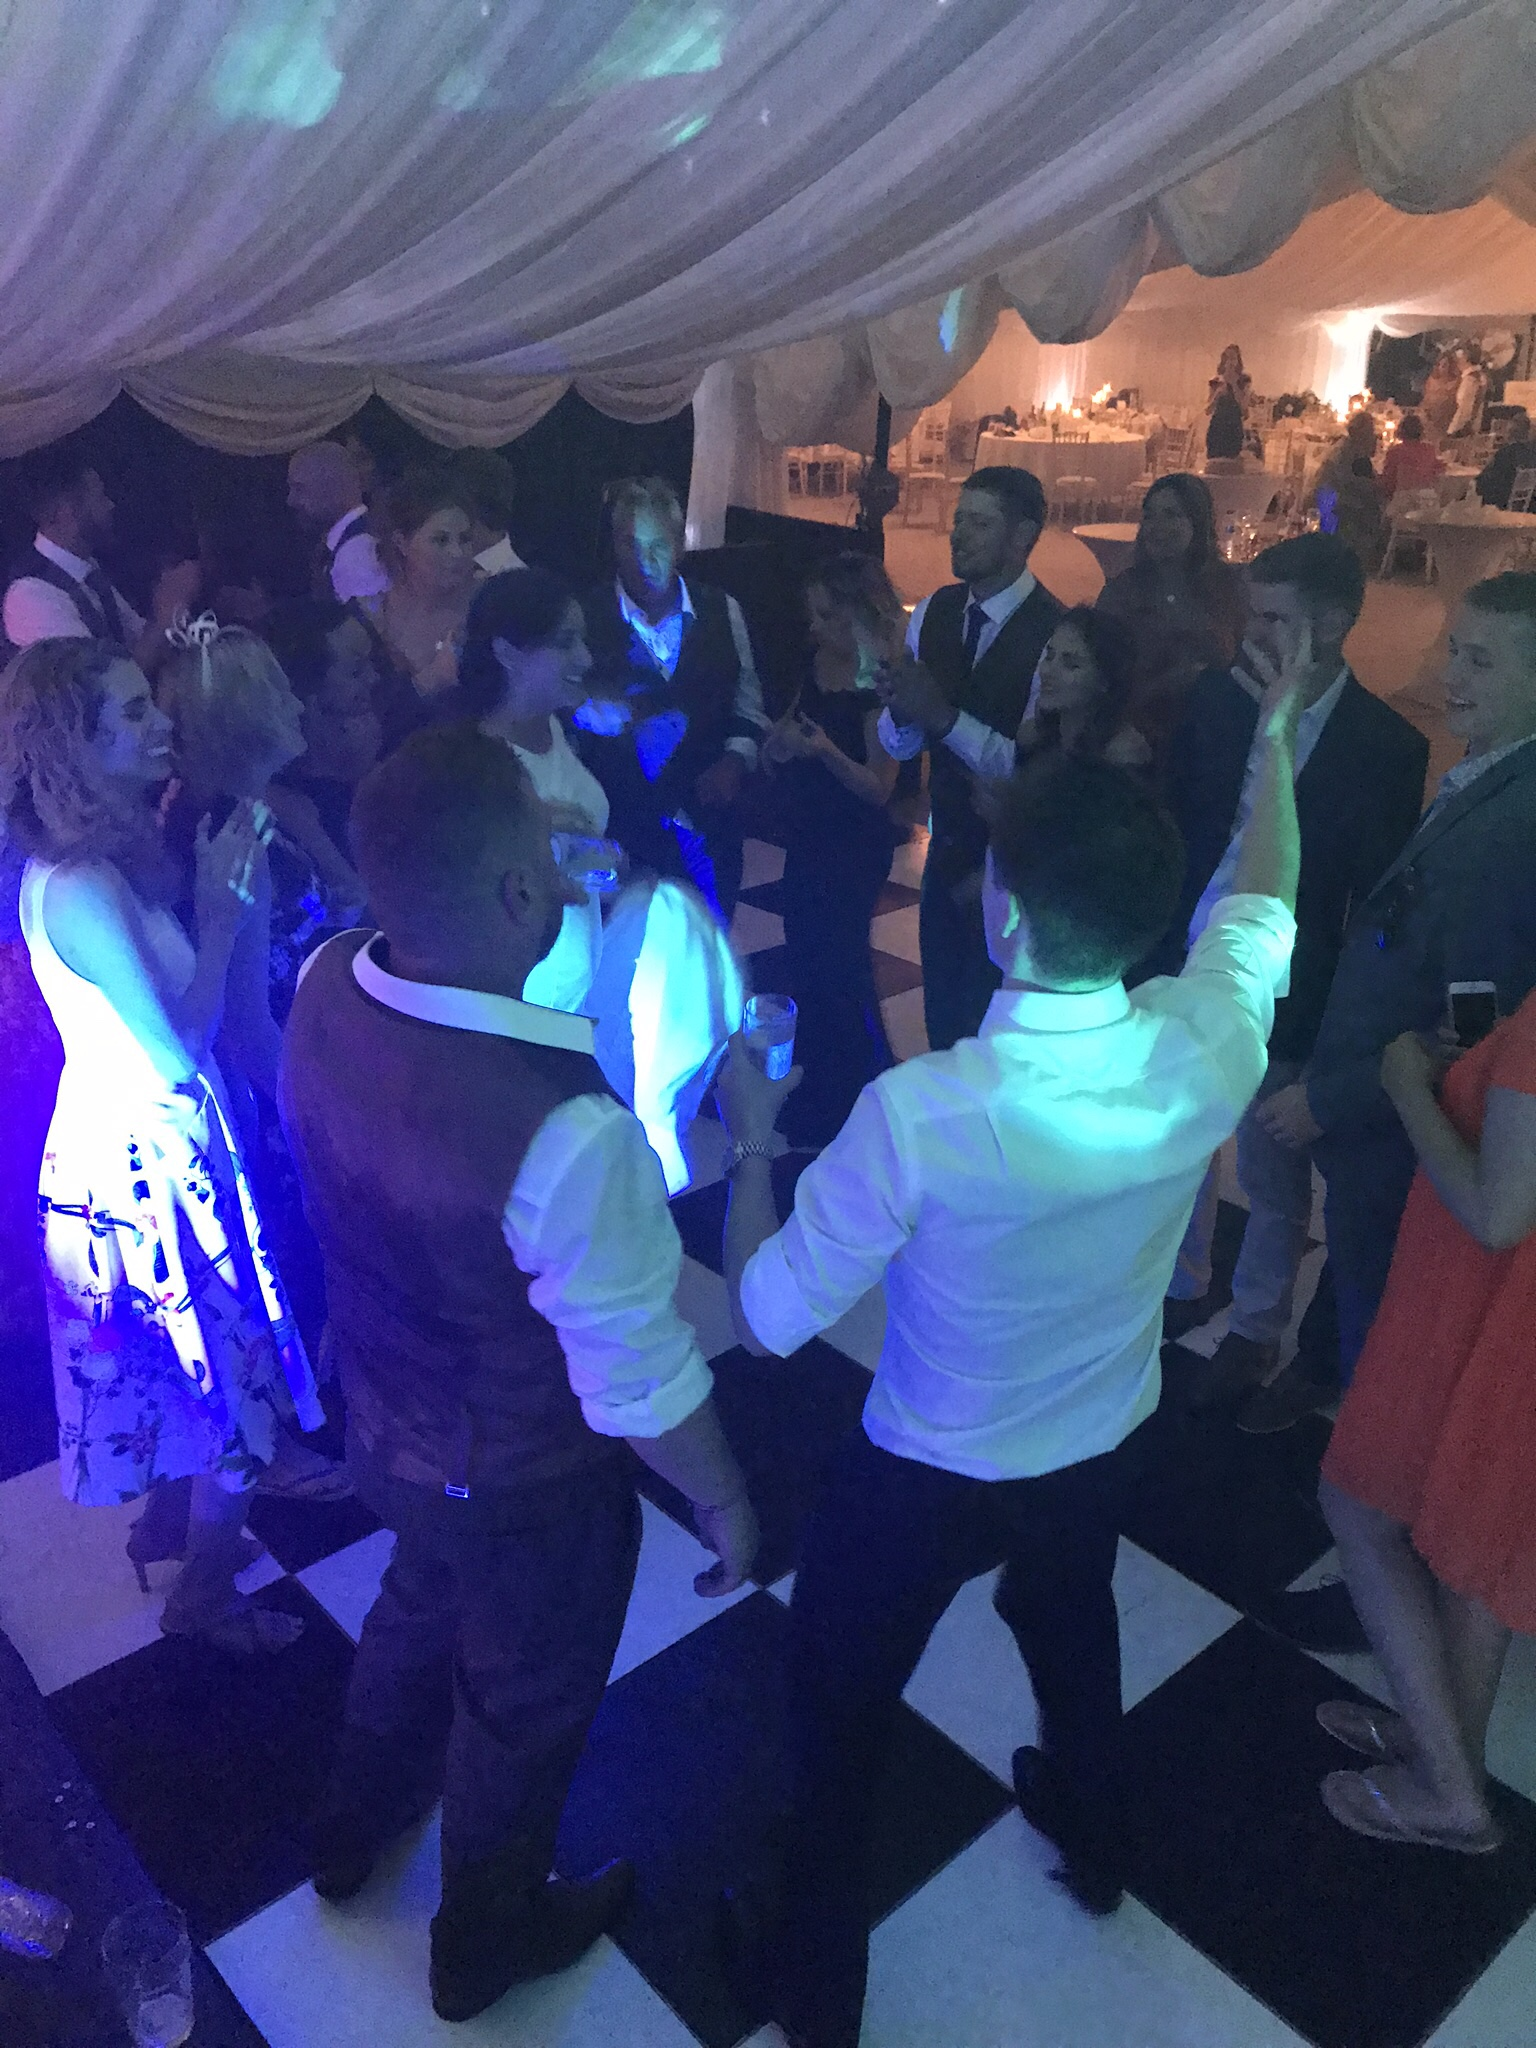 Partygoers all dancing the night away!